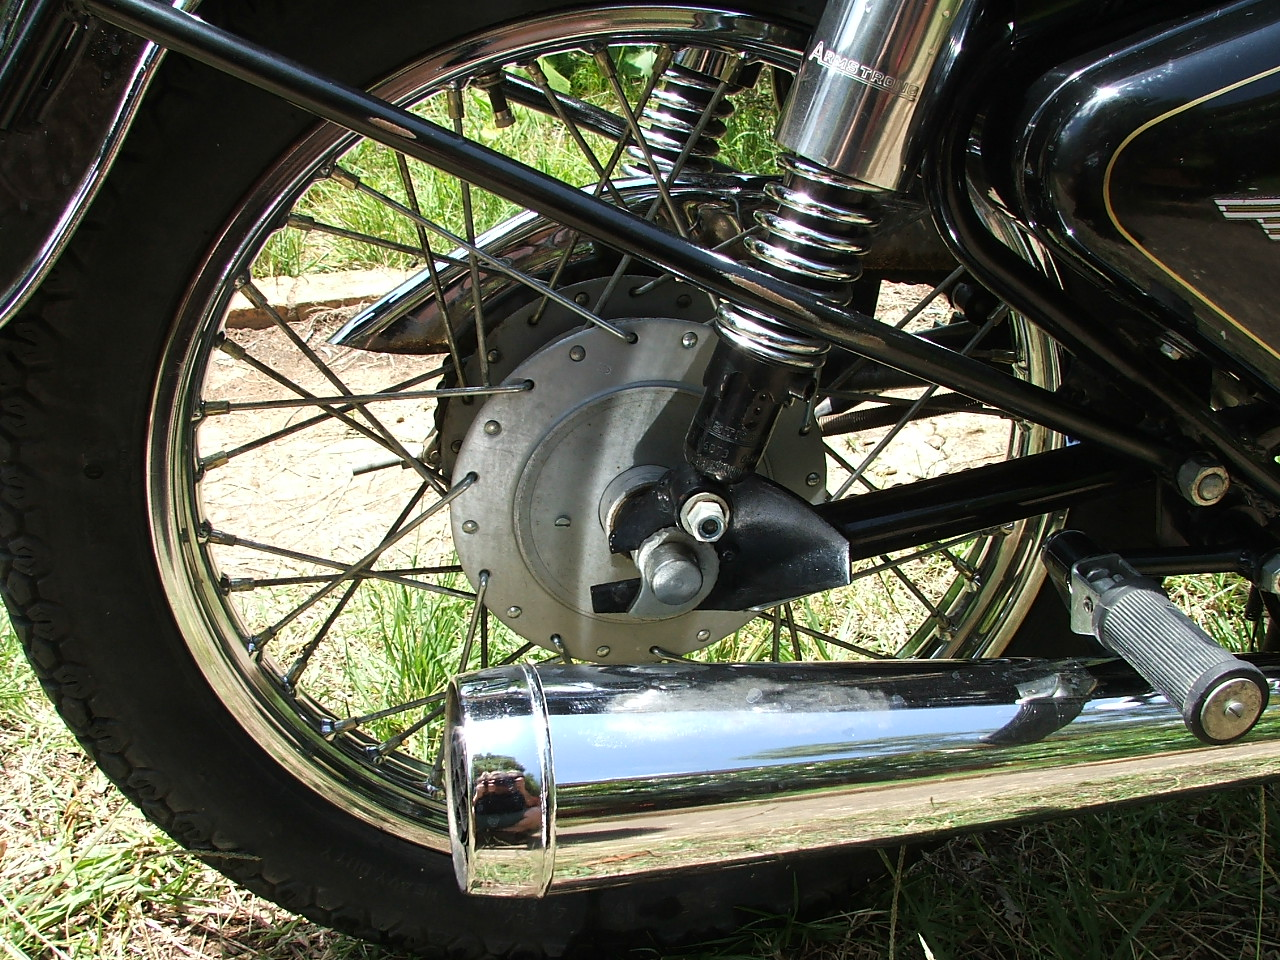 Right side wheel, 350 enfield